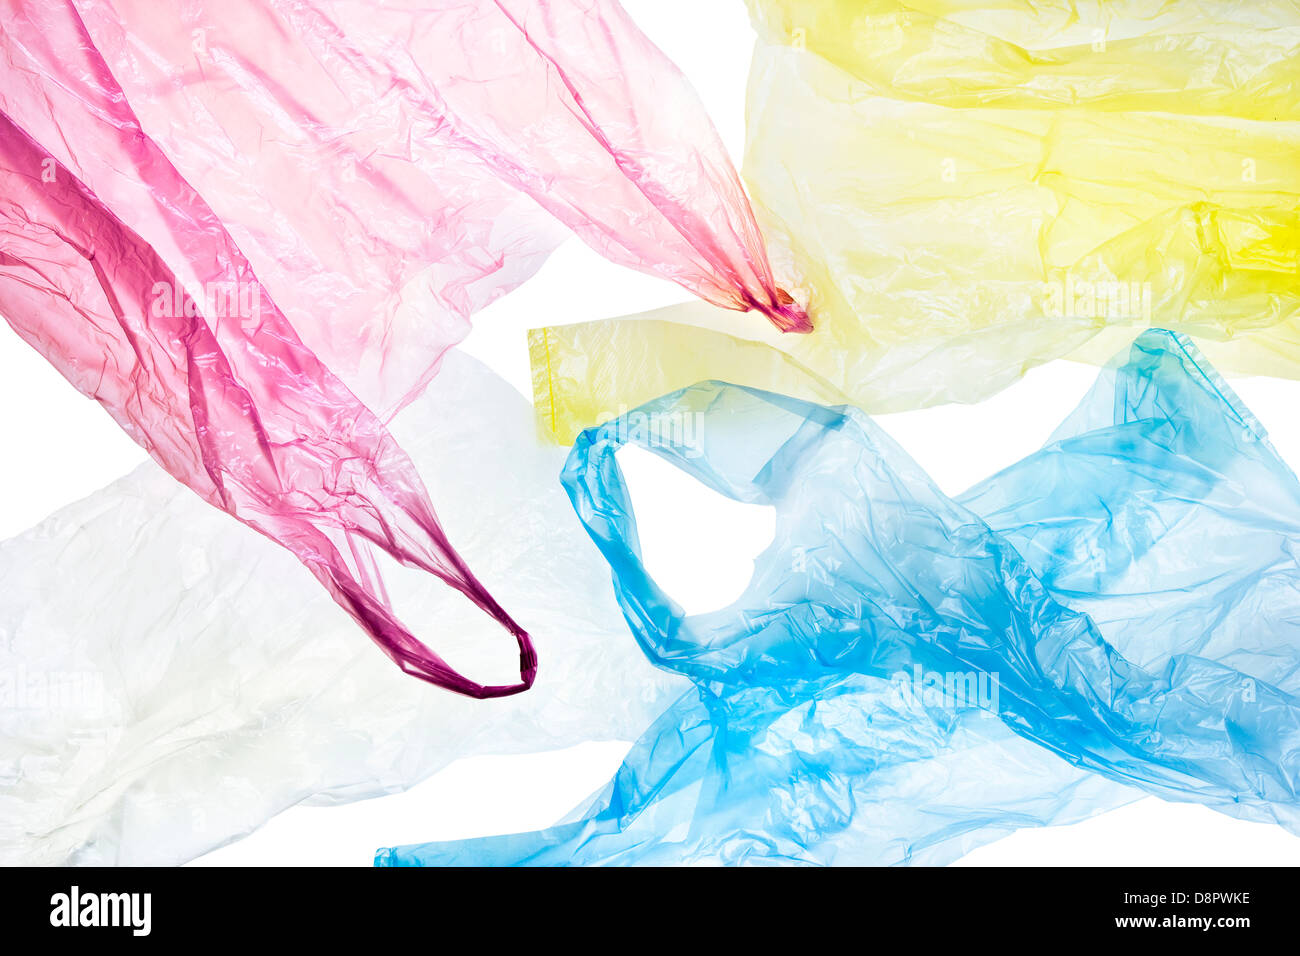 colorful, crumpled plastic bags isolated on white background with clipping path included - Stock Image